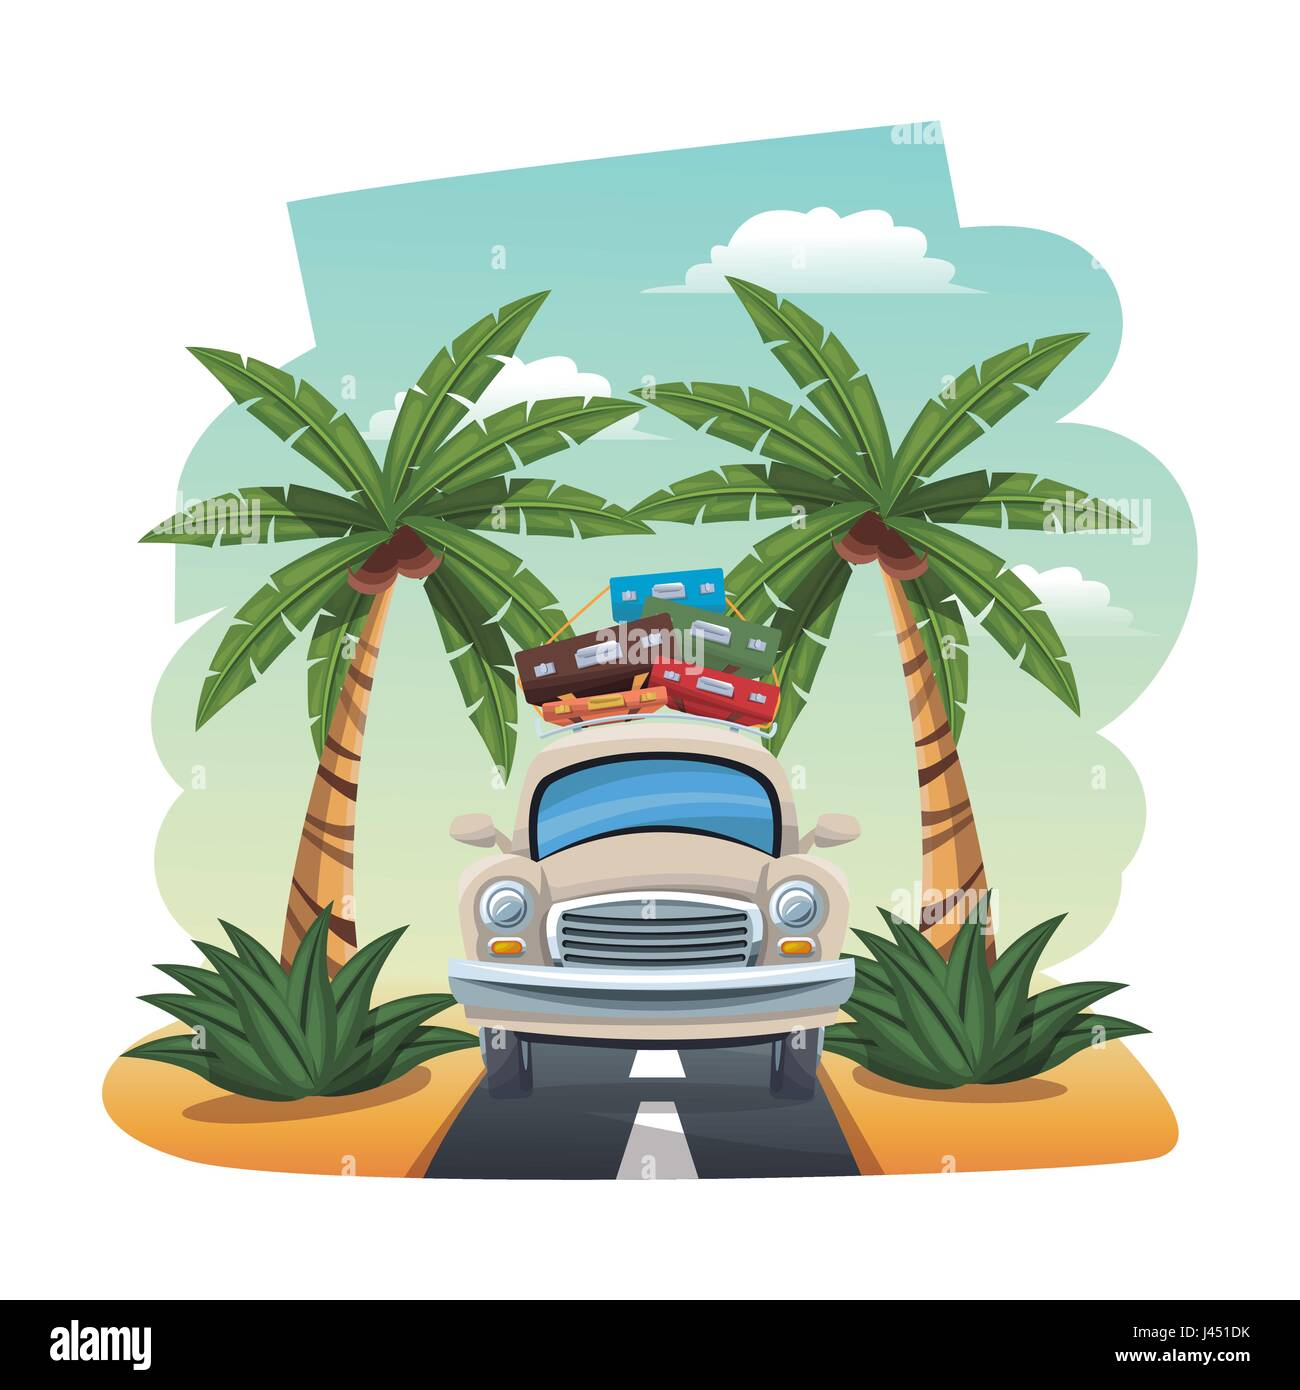 cartoon car with luggage on roof tropical road - Stock Image